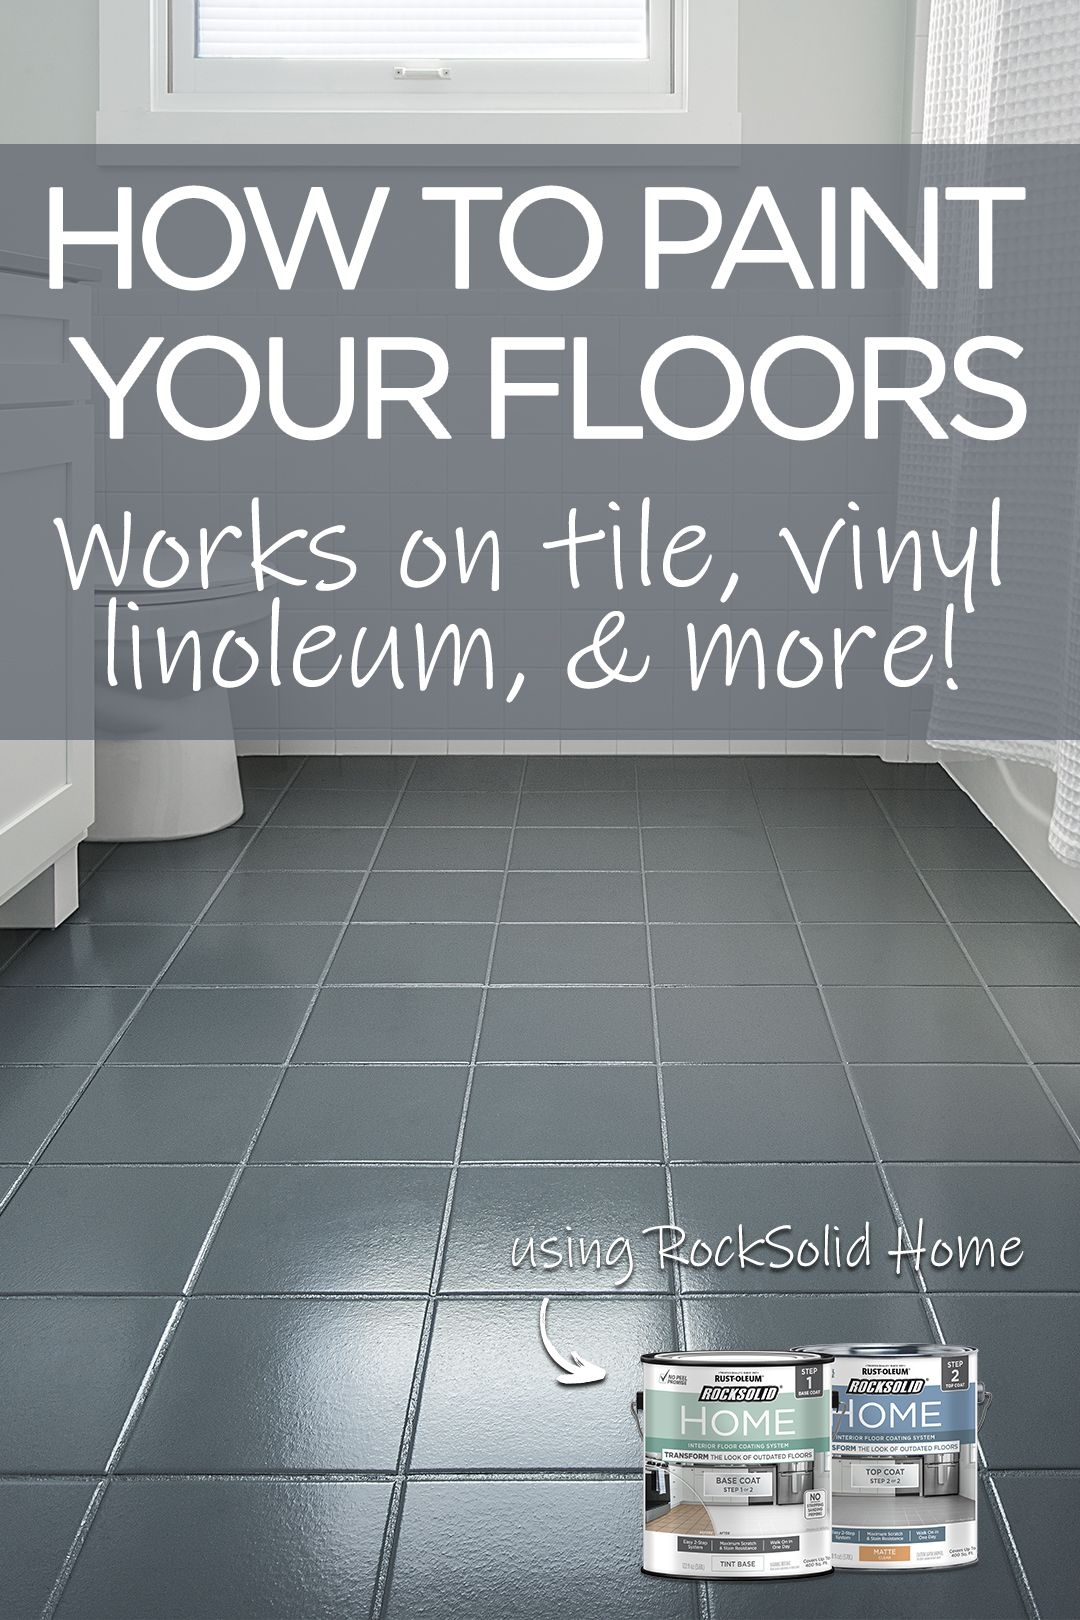 Transform Your Bathroom In A Day By Painting Your Floor Give Your Bathroom Floor New Life With This Easy And Inexpe Diy Flooring Painting Tile Floors Flooring